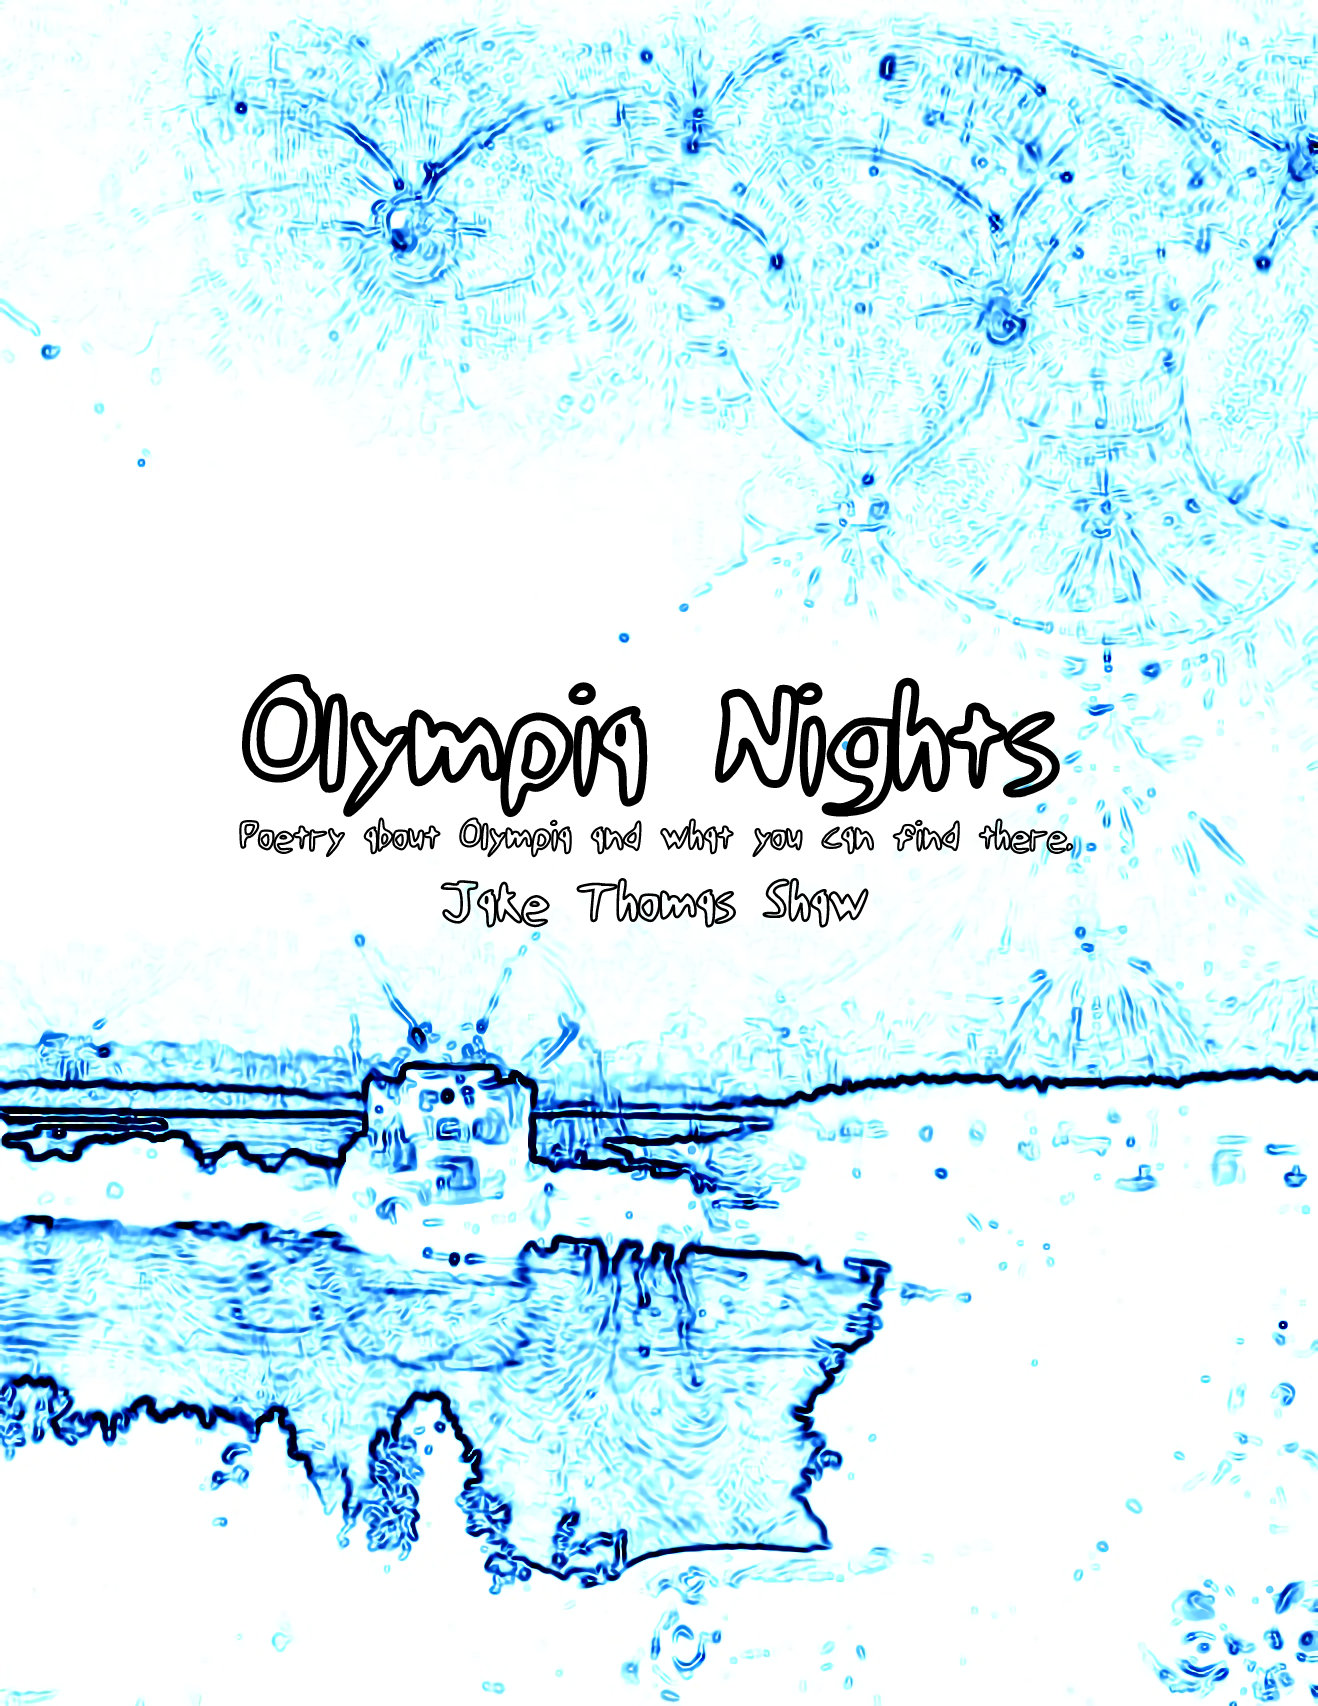 olympia nights cover.jpg